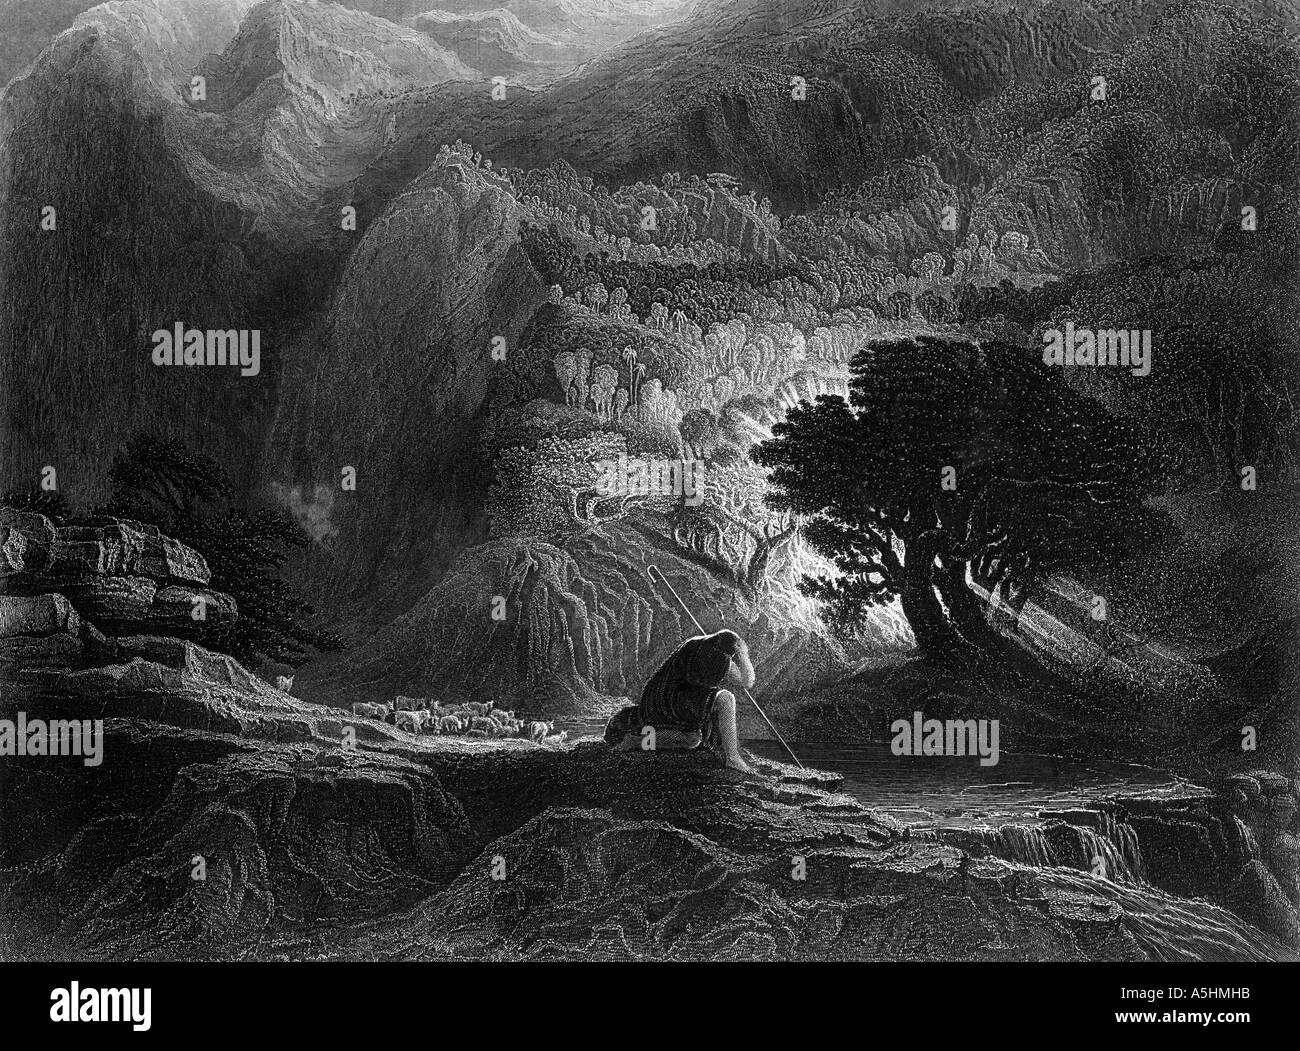 moses and the burning bush exodus chapter 3 verse 2 engraving